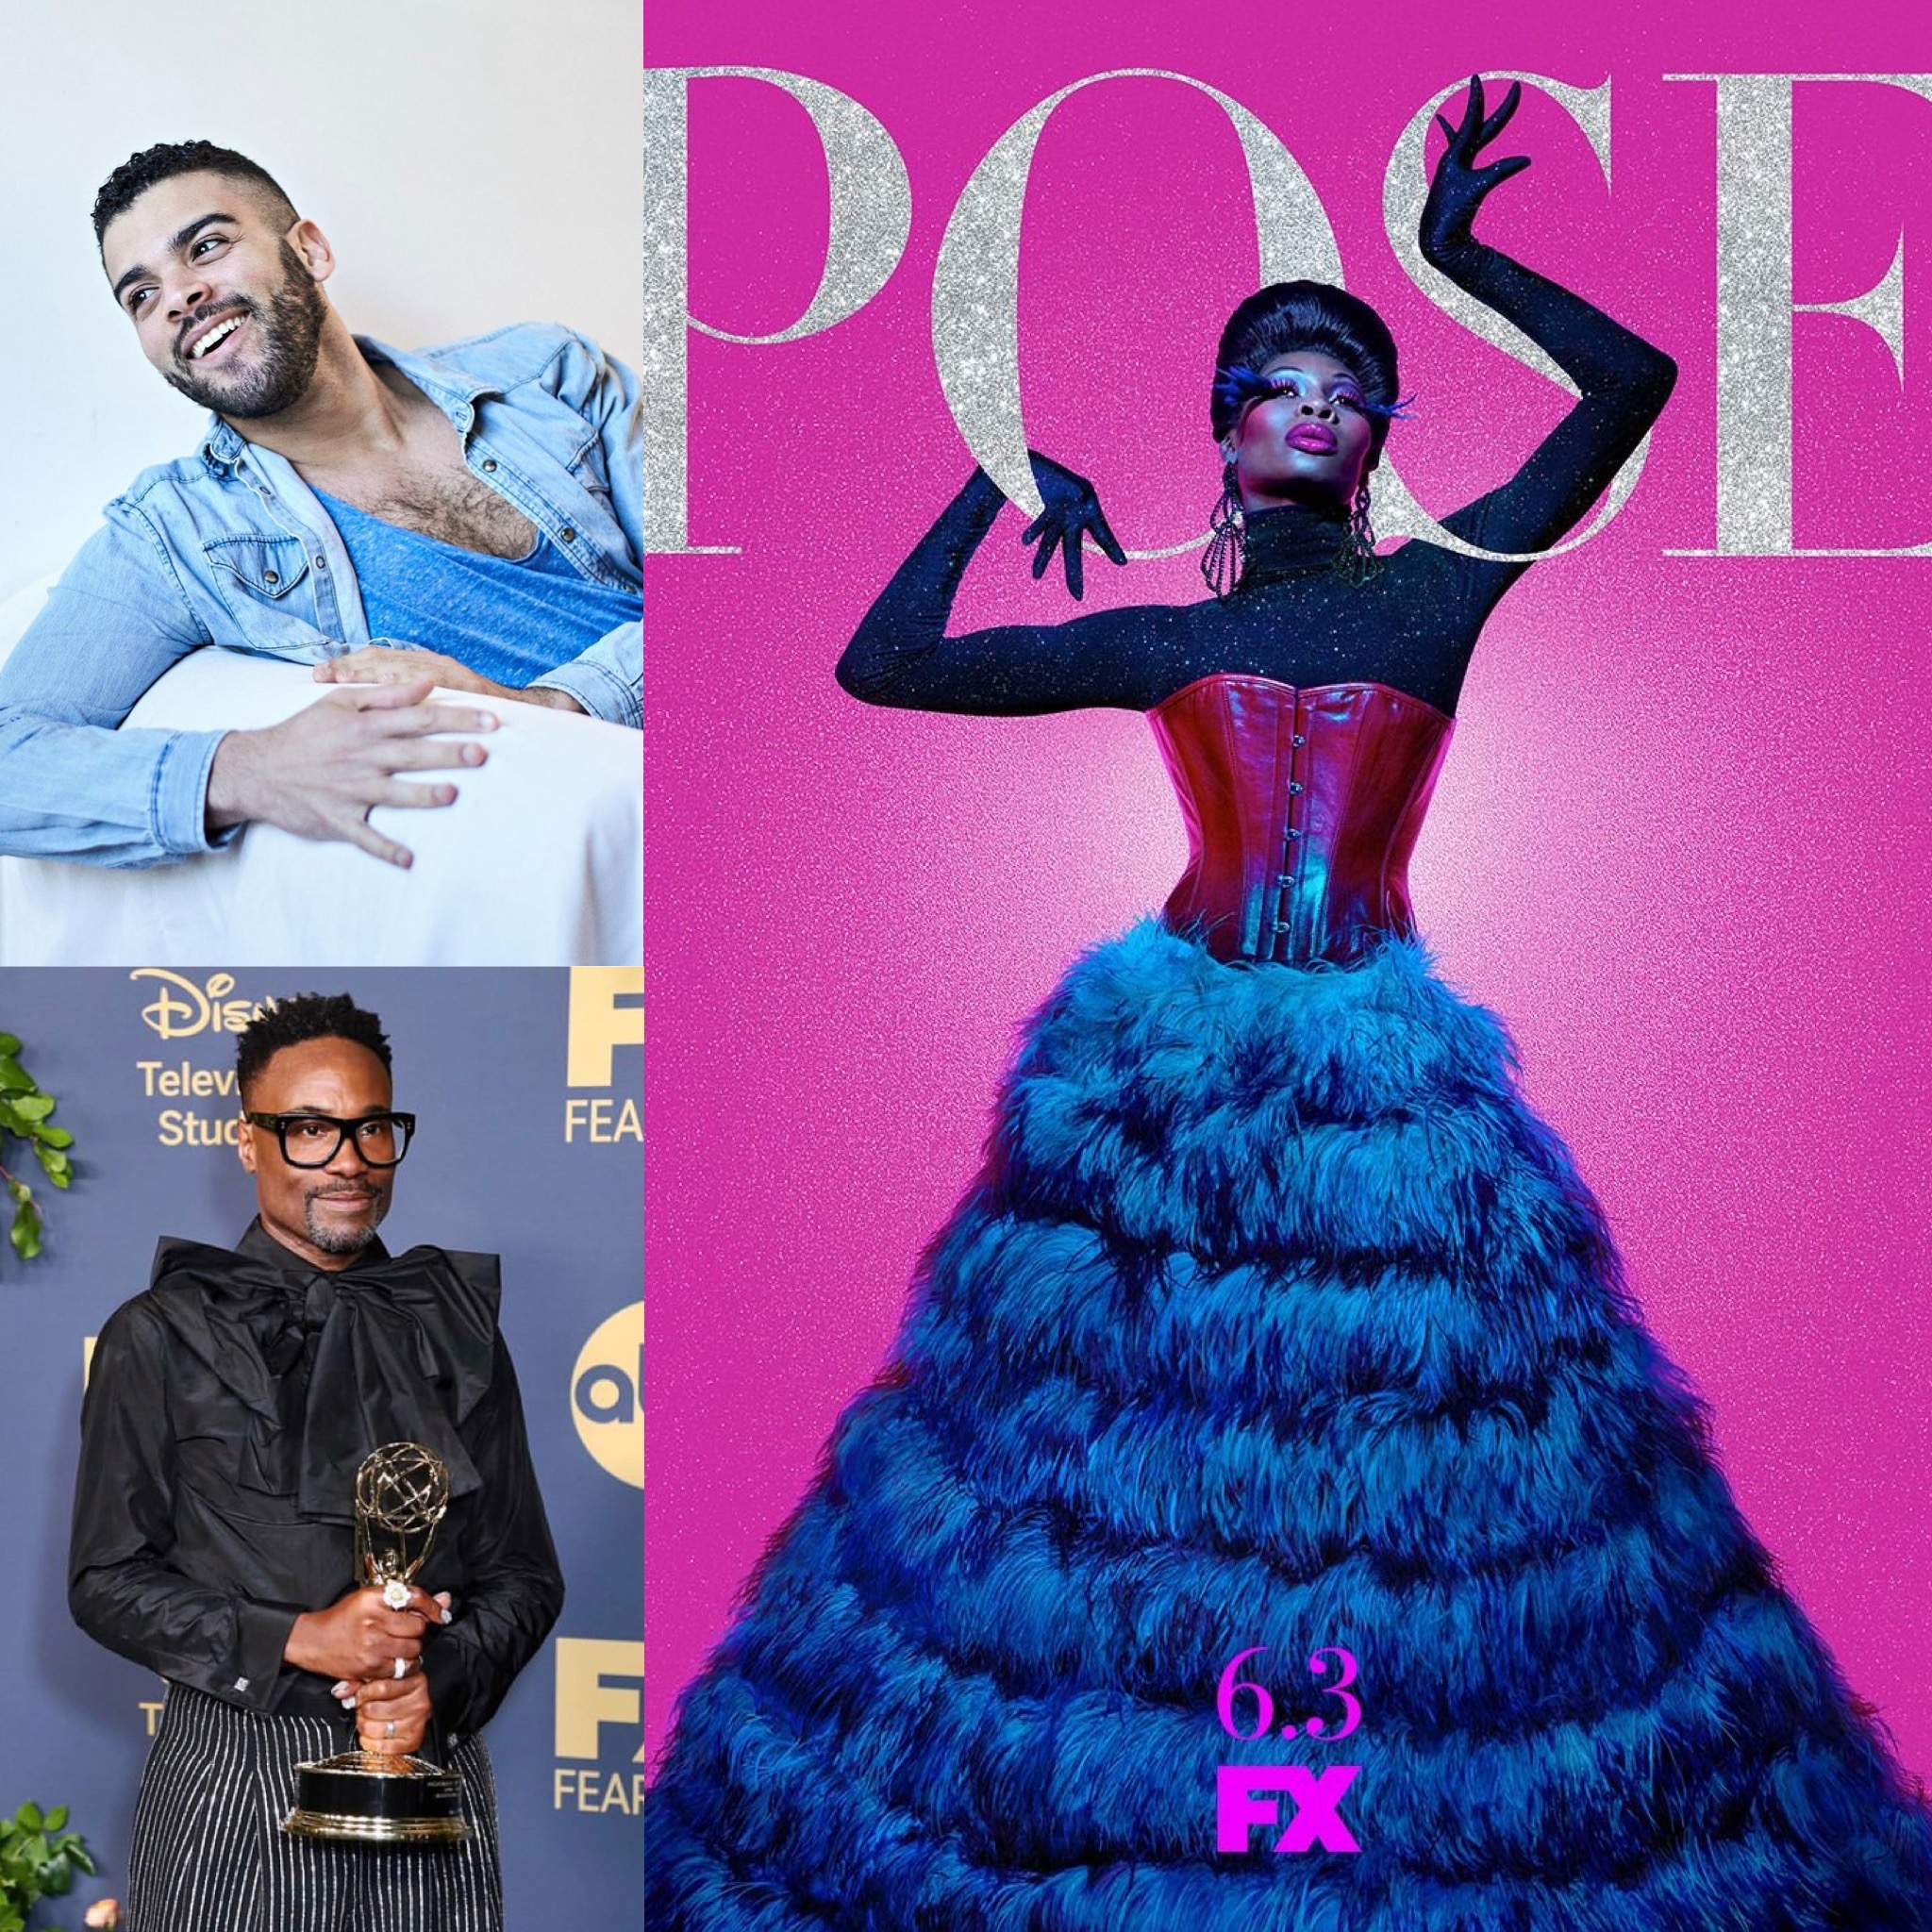 Billy Porter Pose LGBT Doublage FX